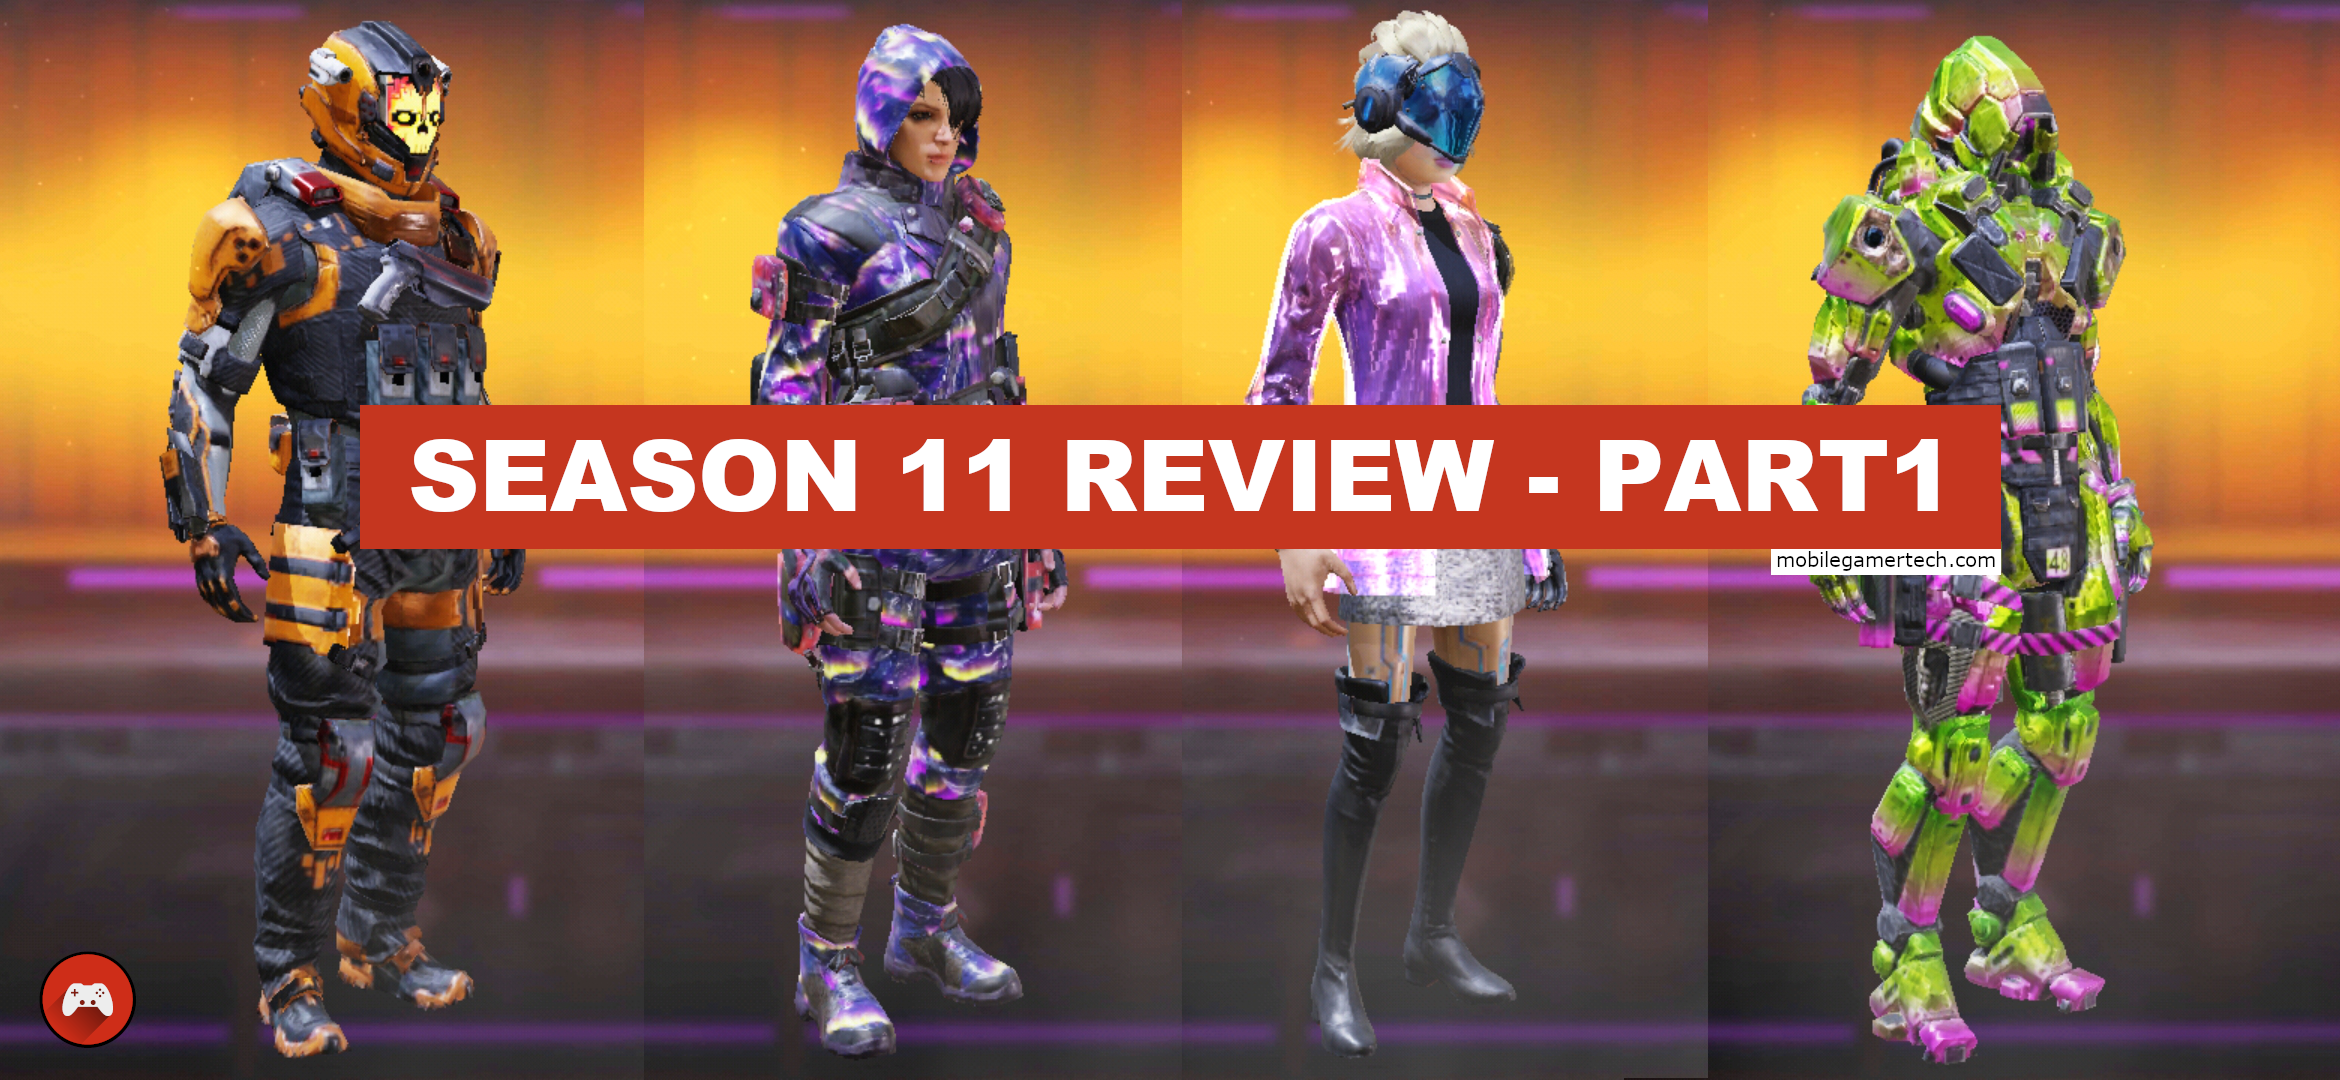 Season 11 review part 1